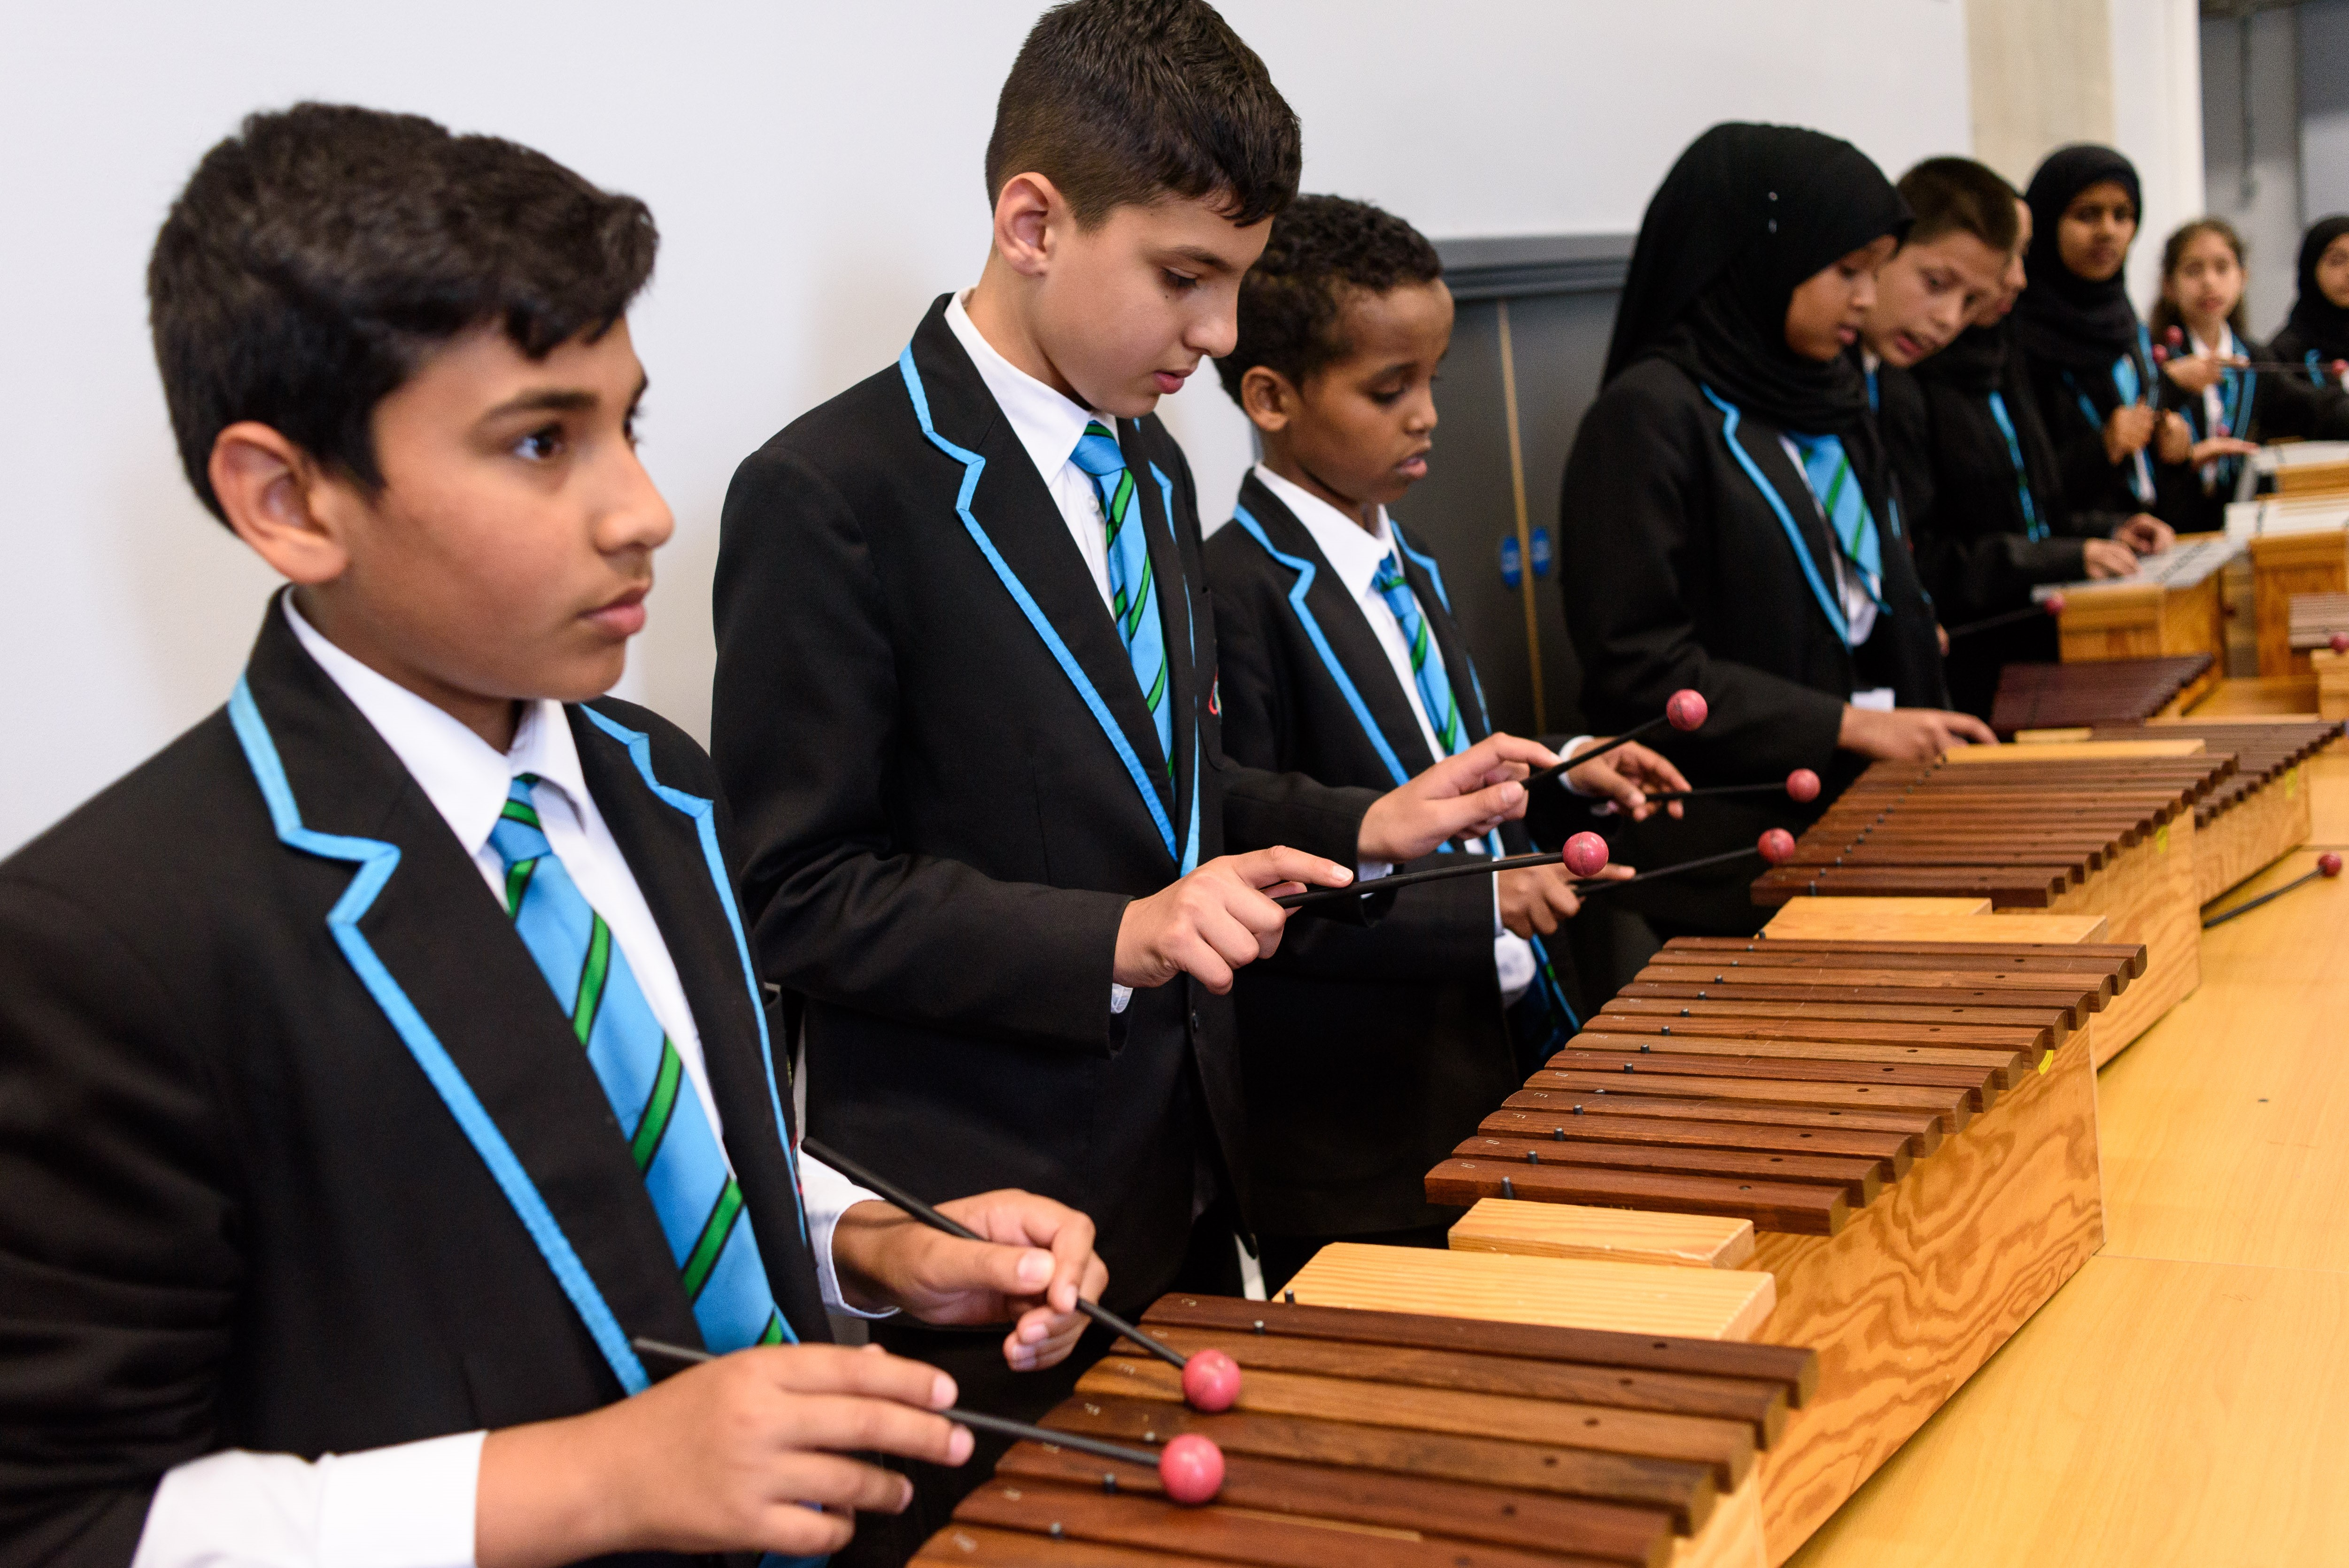 Children experiencing orchestral music